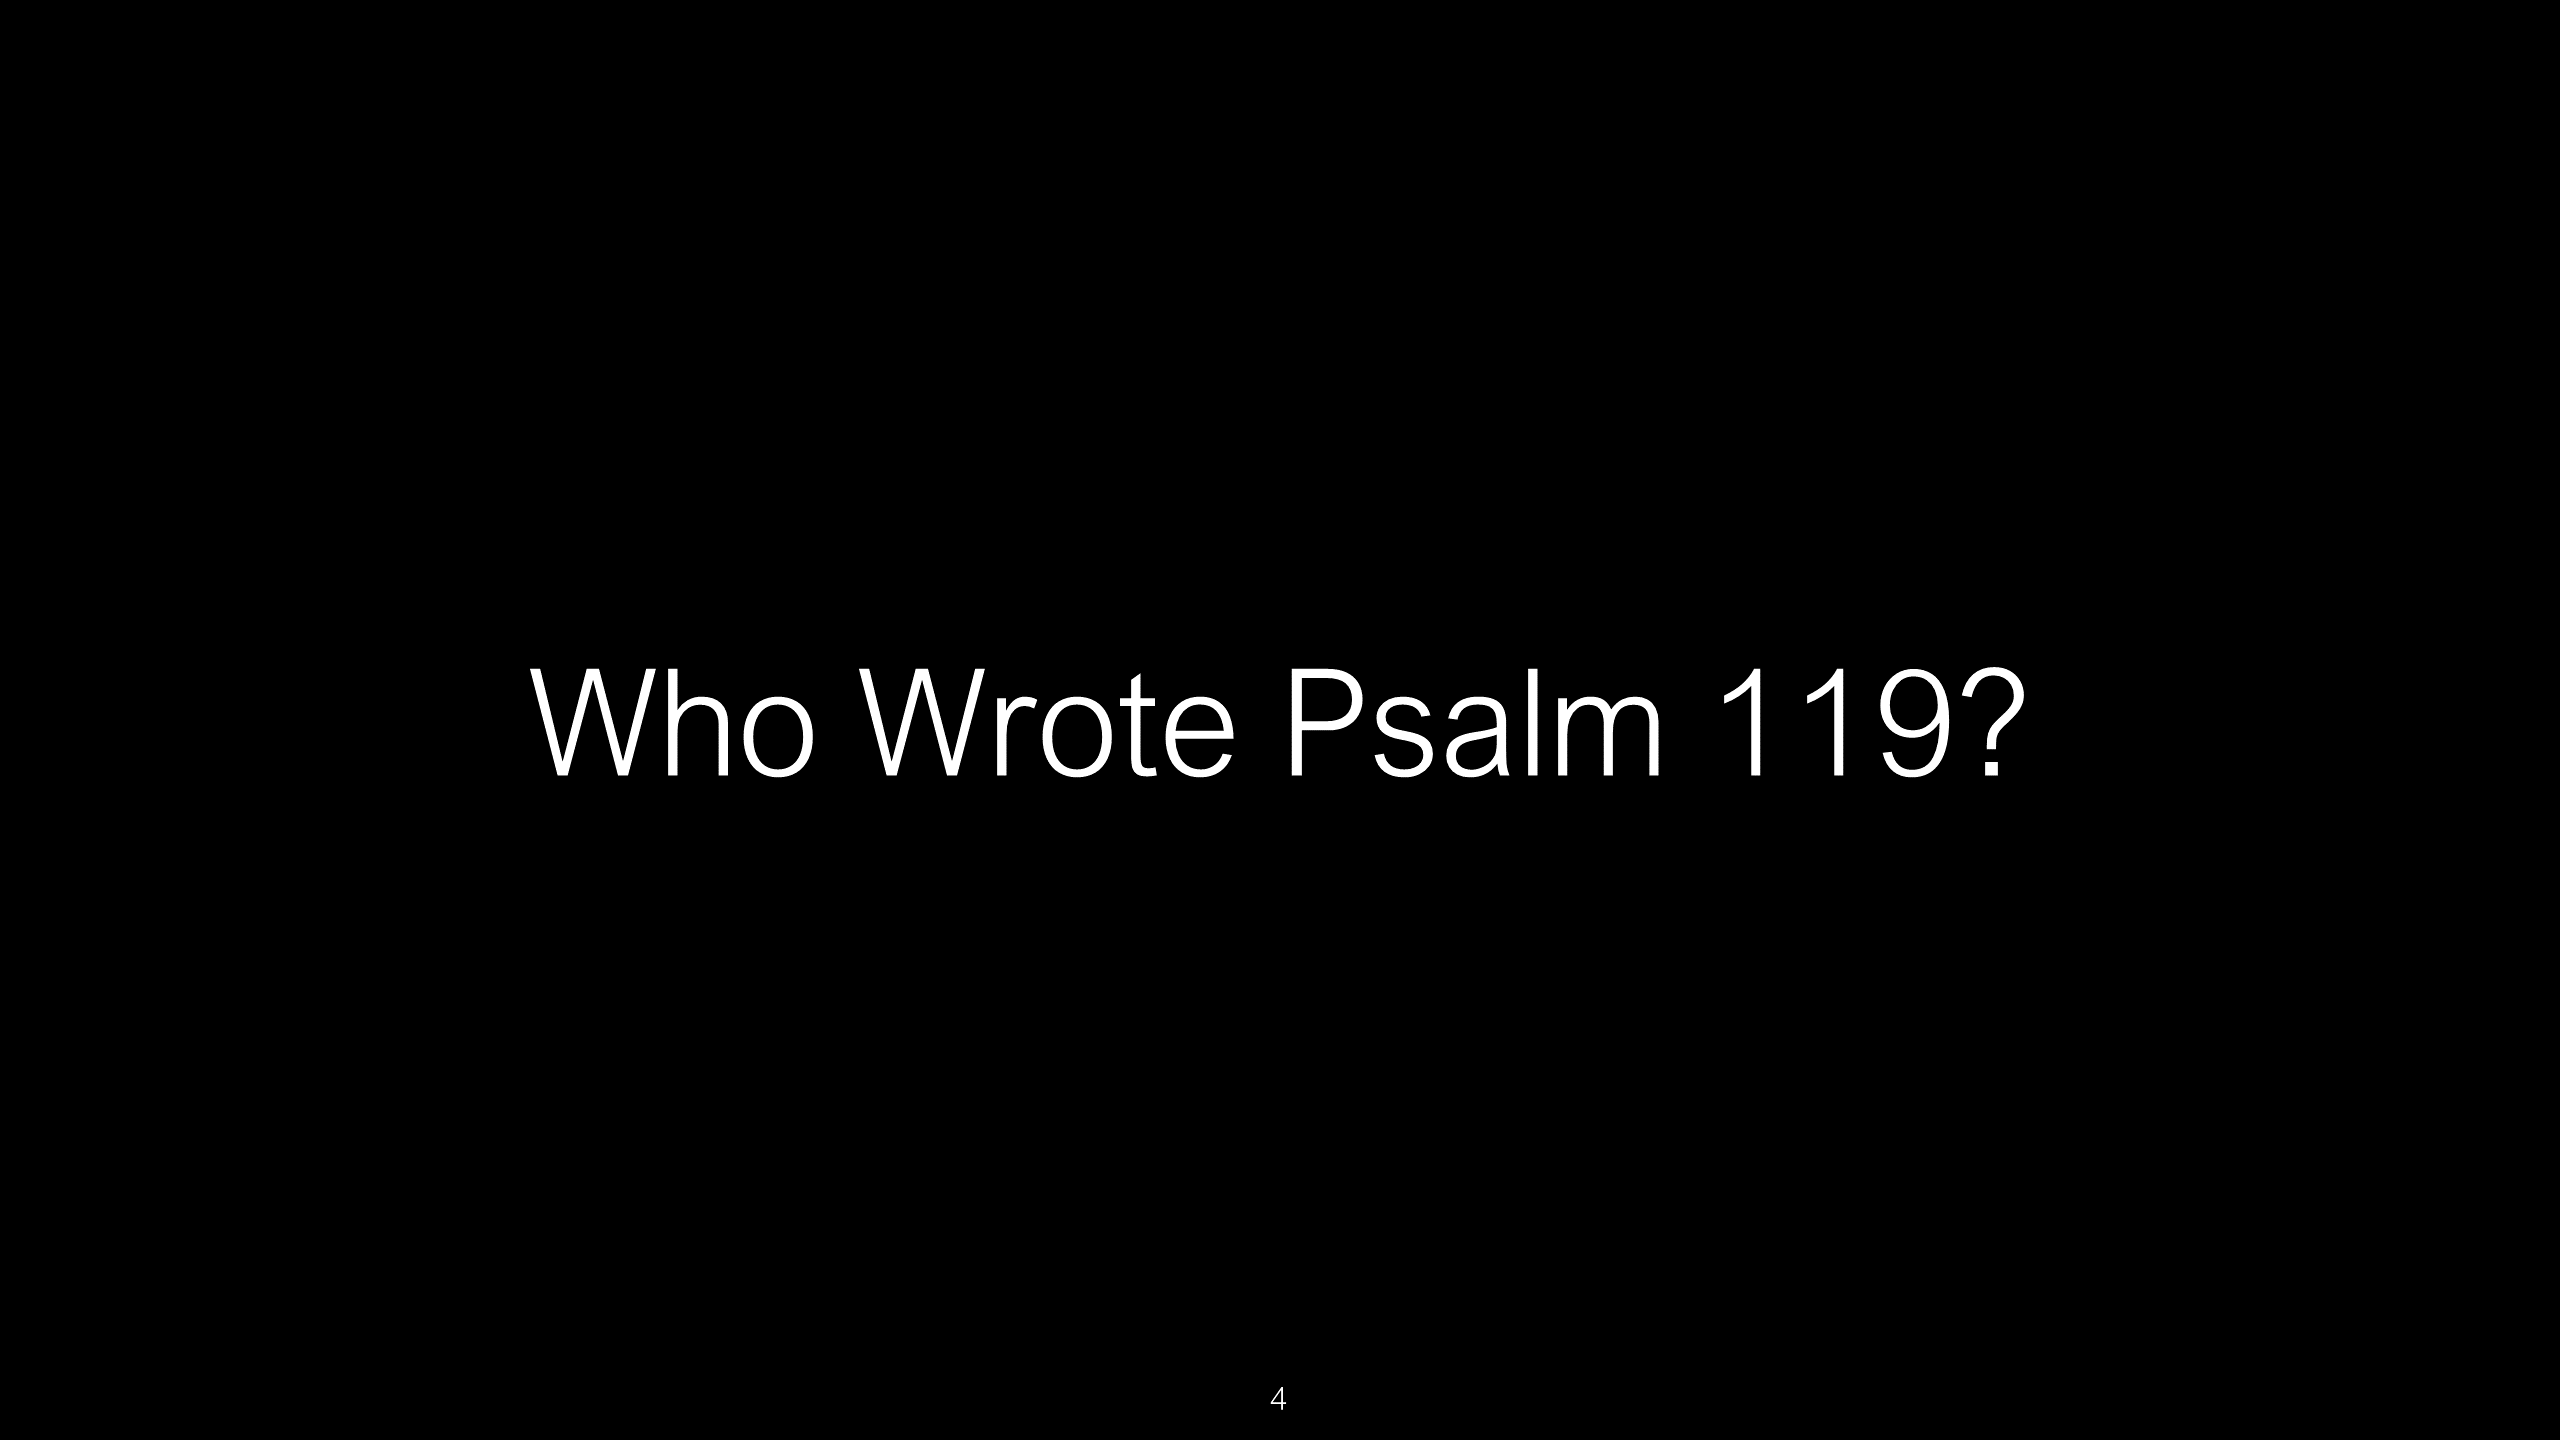 SWS-36 - Psalm 119 - The Bible's Longest Chapter is a Spiritual Diary on How to Use God's Word as the Sword o (4)